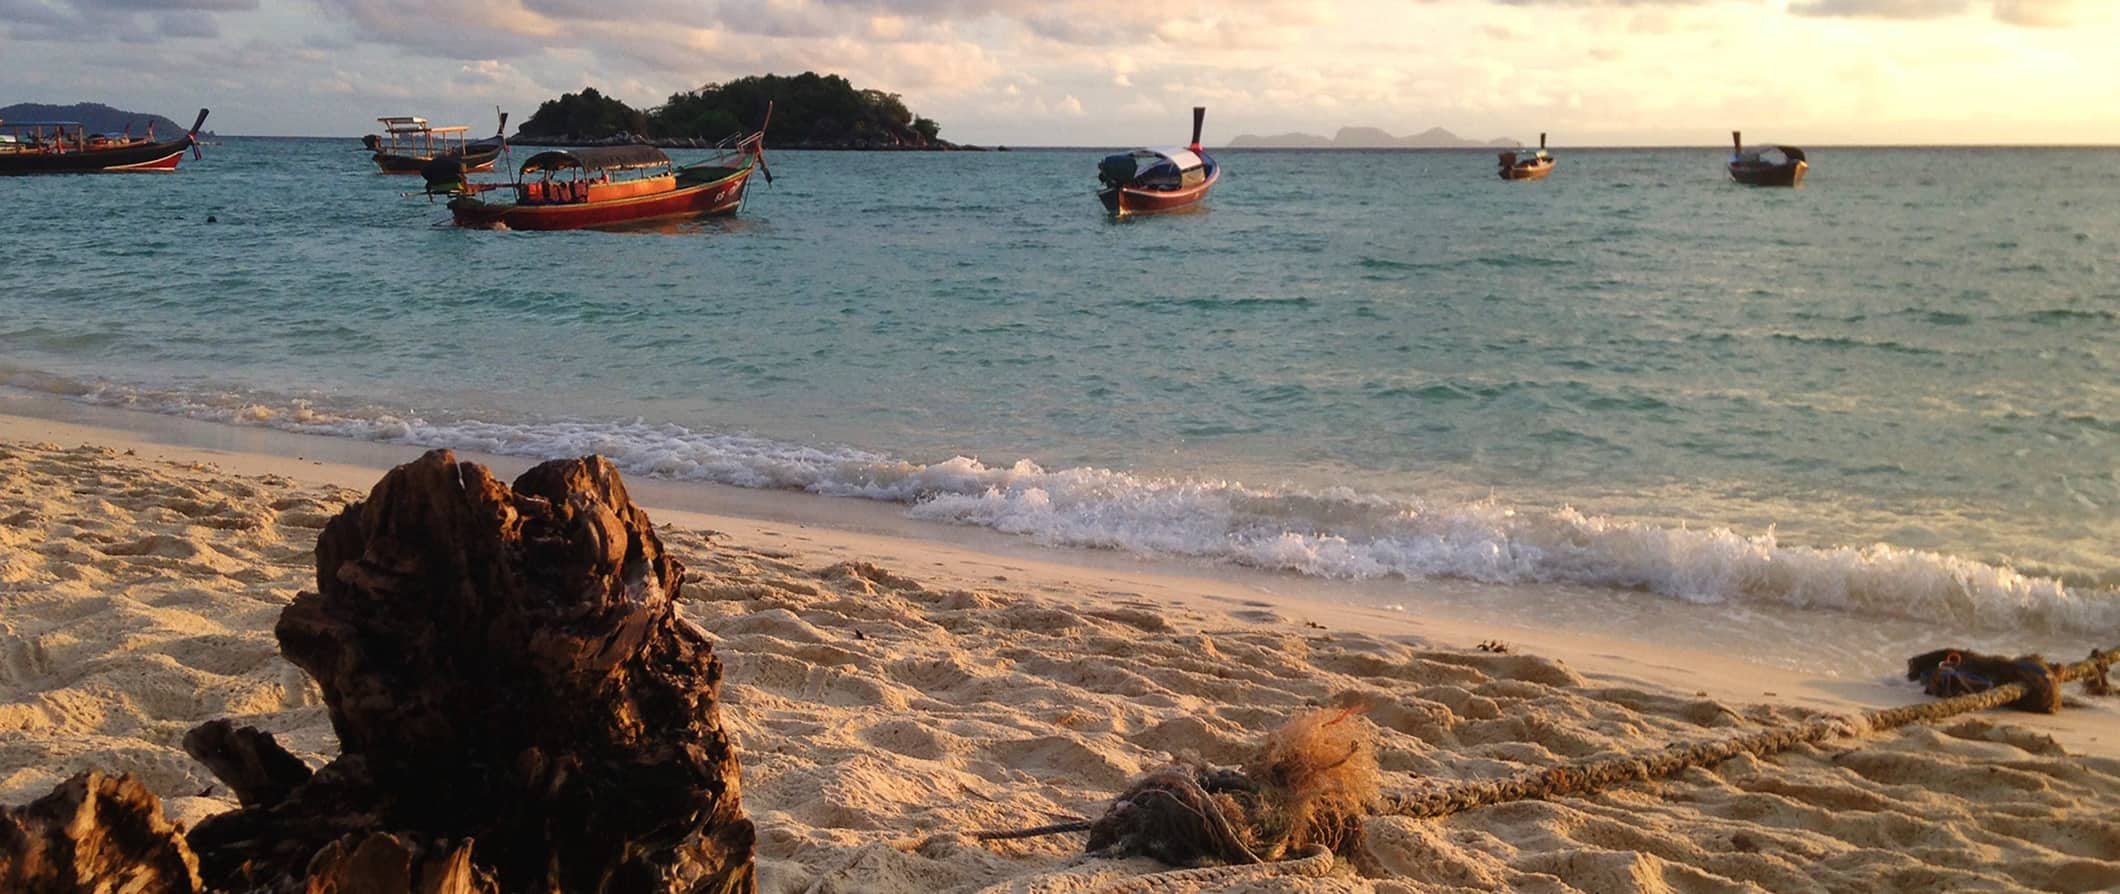 a beach scene in Ko Lipe